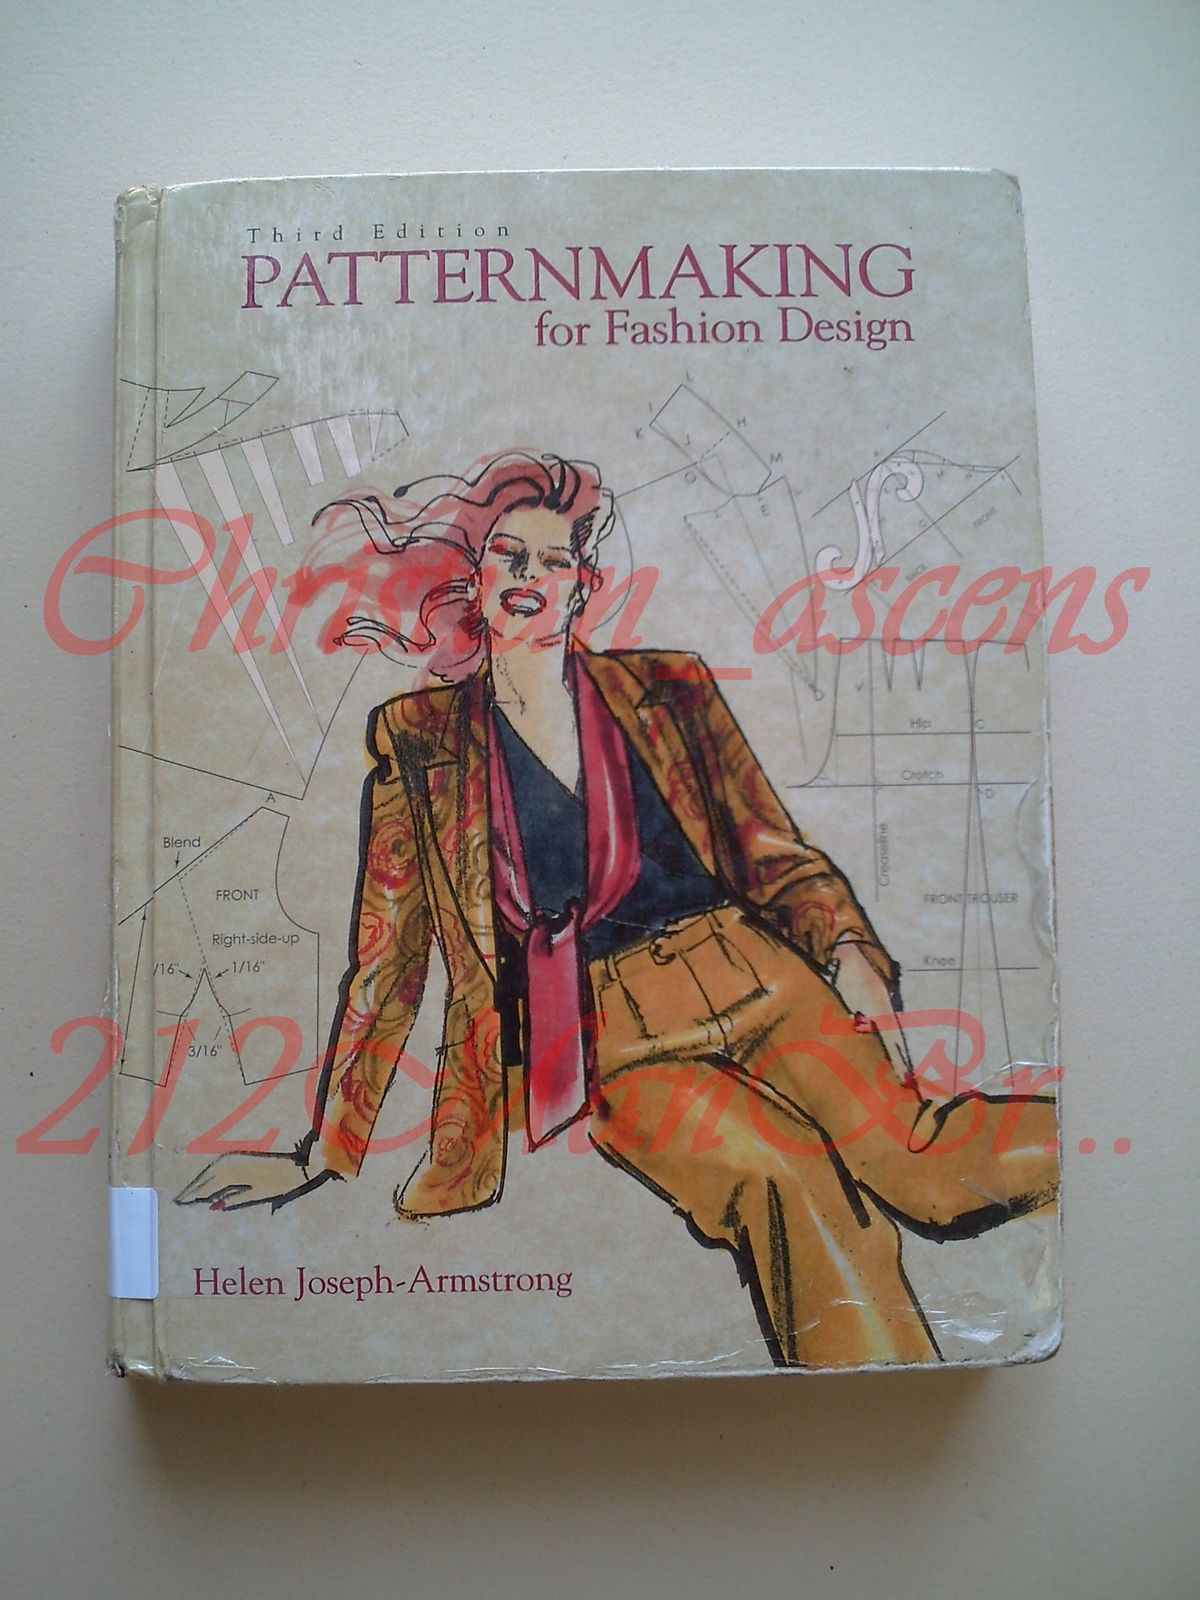 Patternmaking for fashion design 5th edition ebook 22